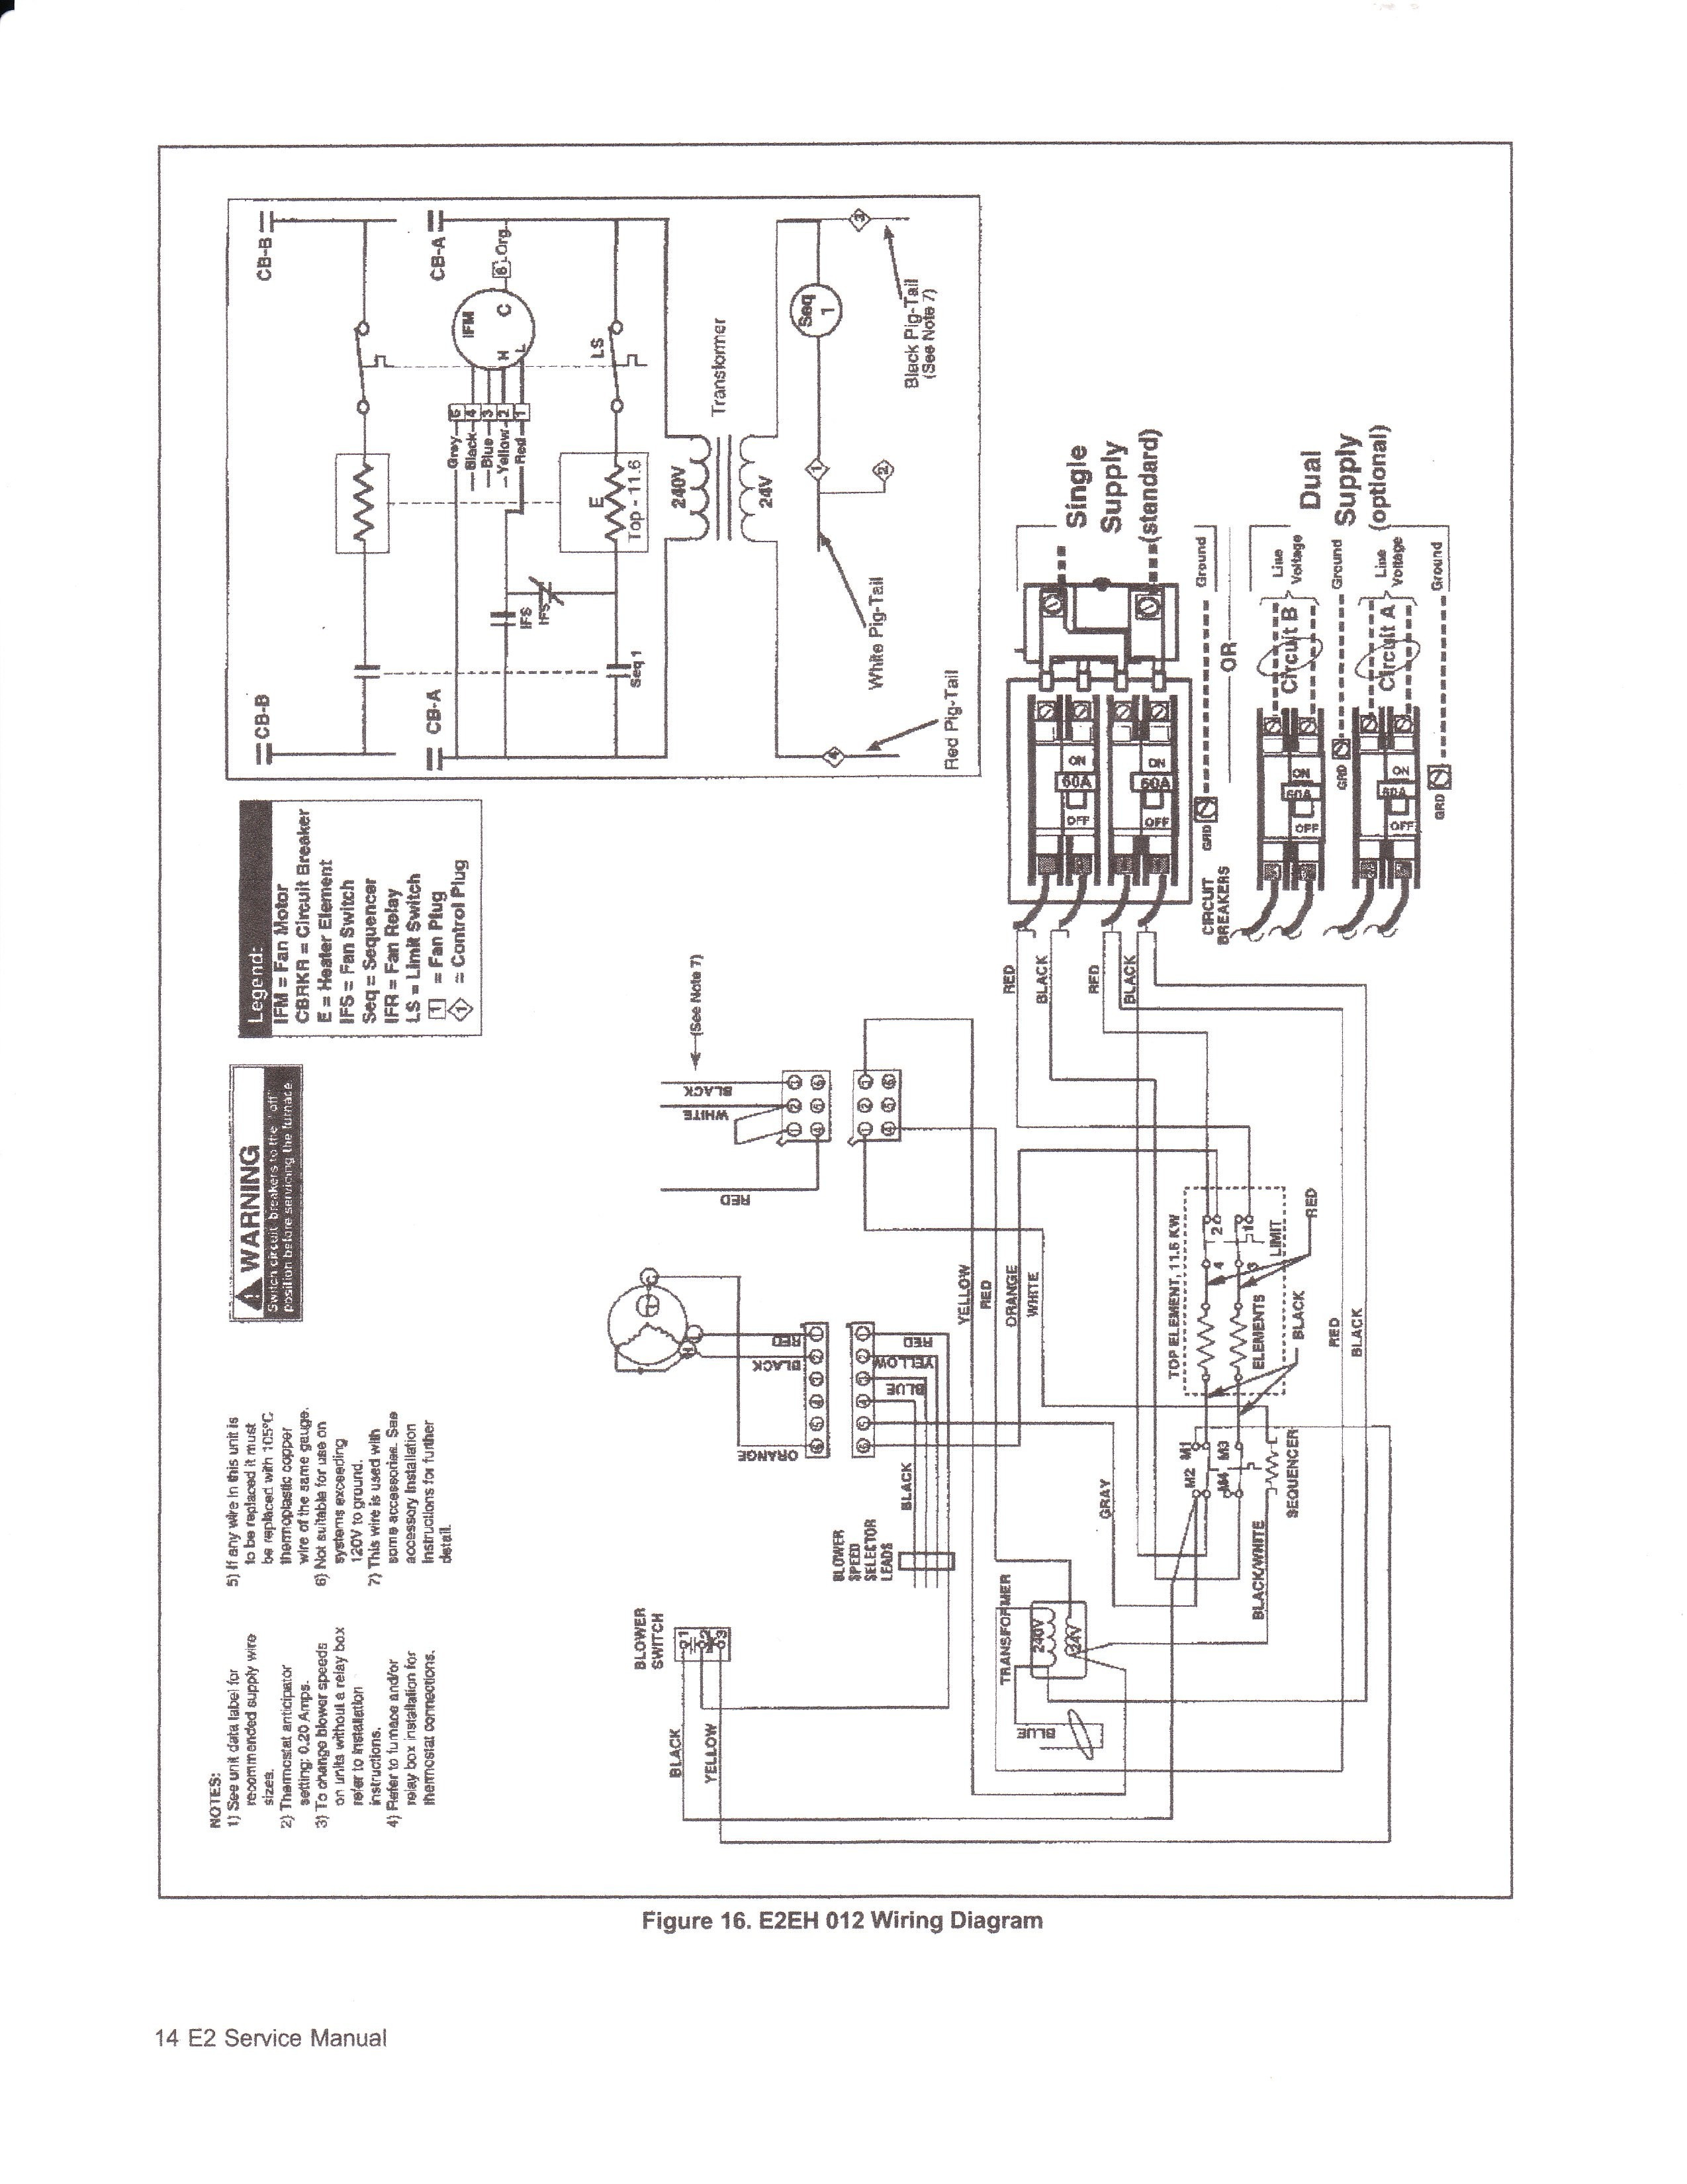 Wiring Diagram Intertherm E3eb 015h